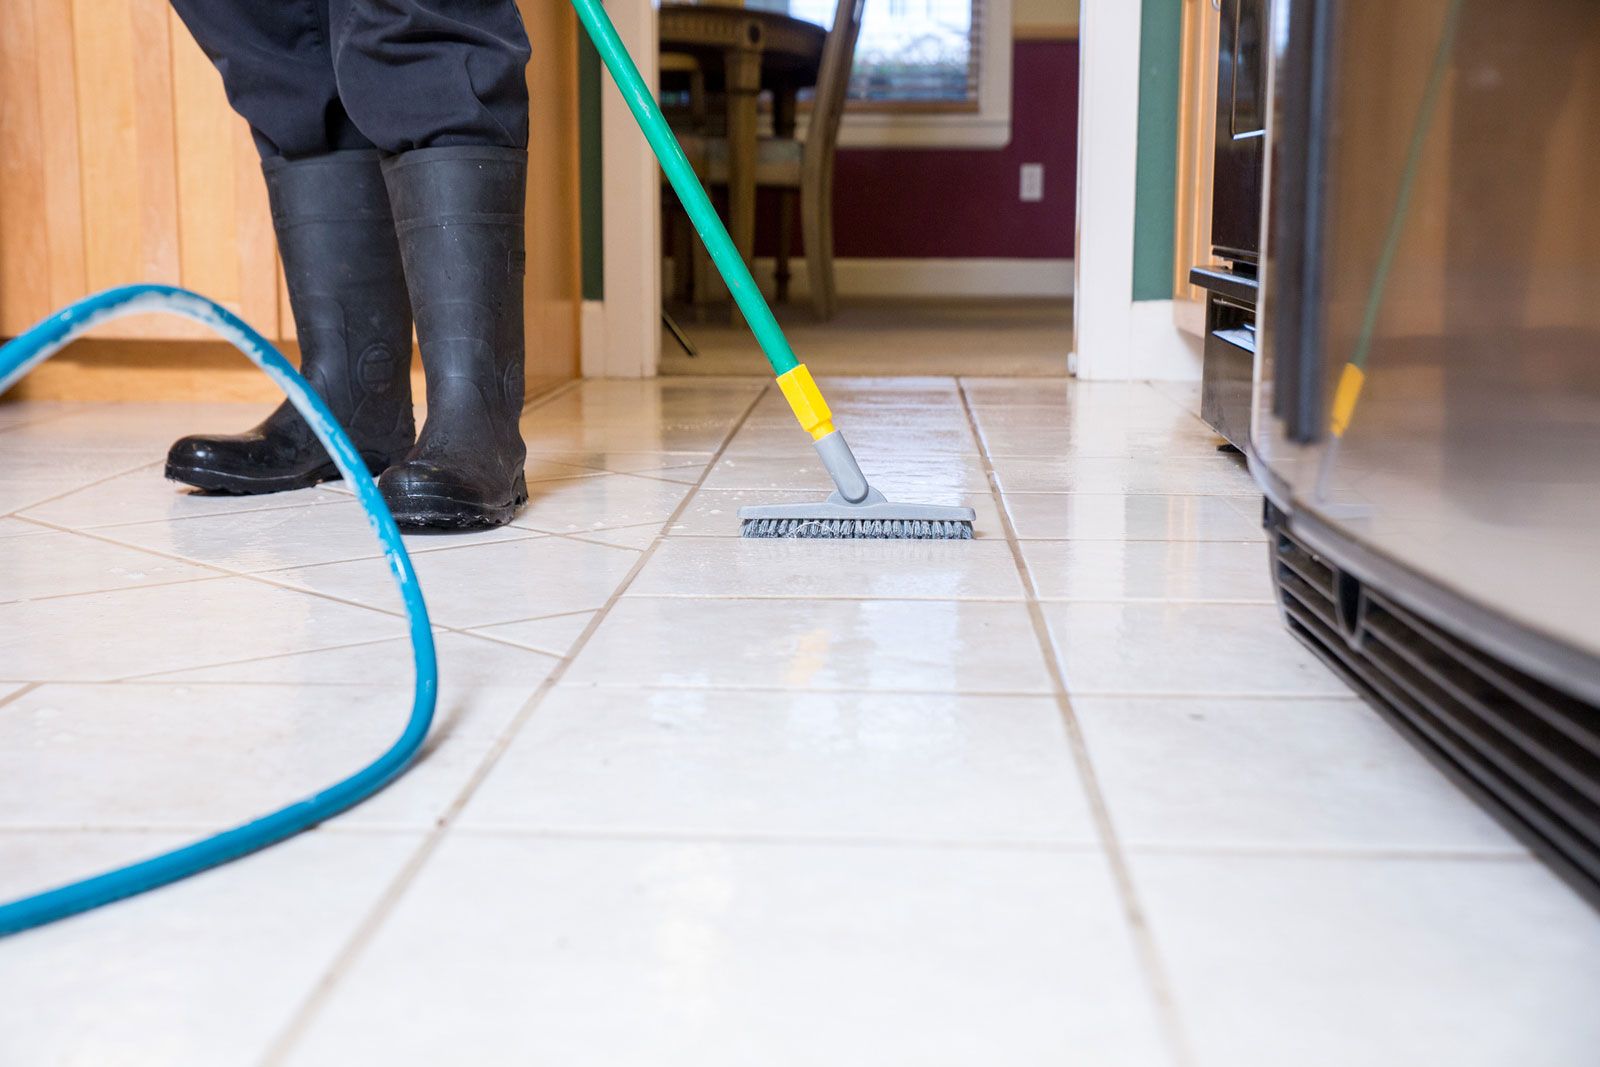 Tile and Grout Cleaning Gainesville FL | Tile Cleaning Services